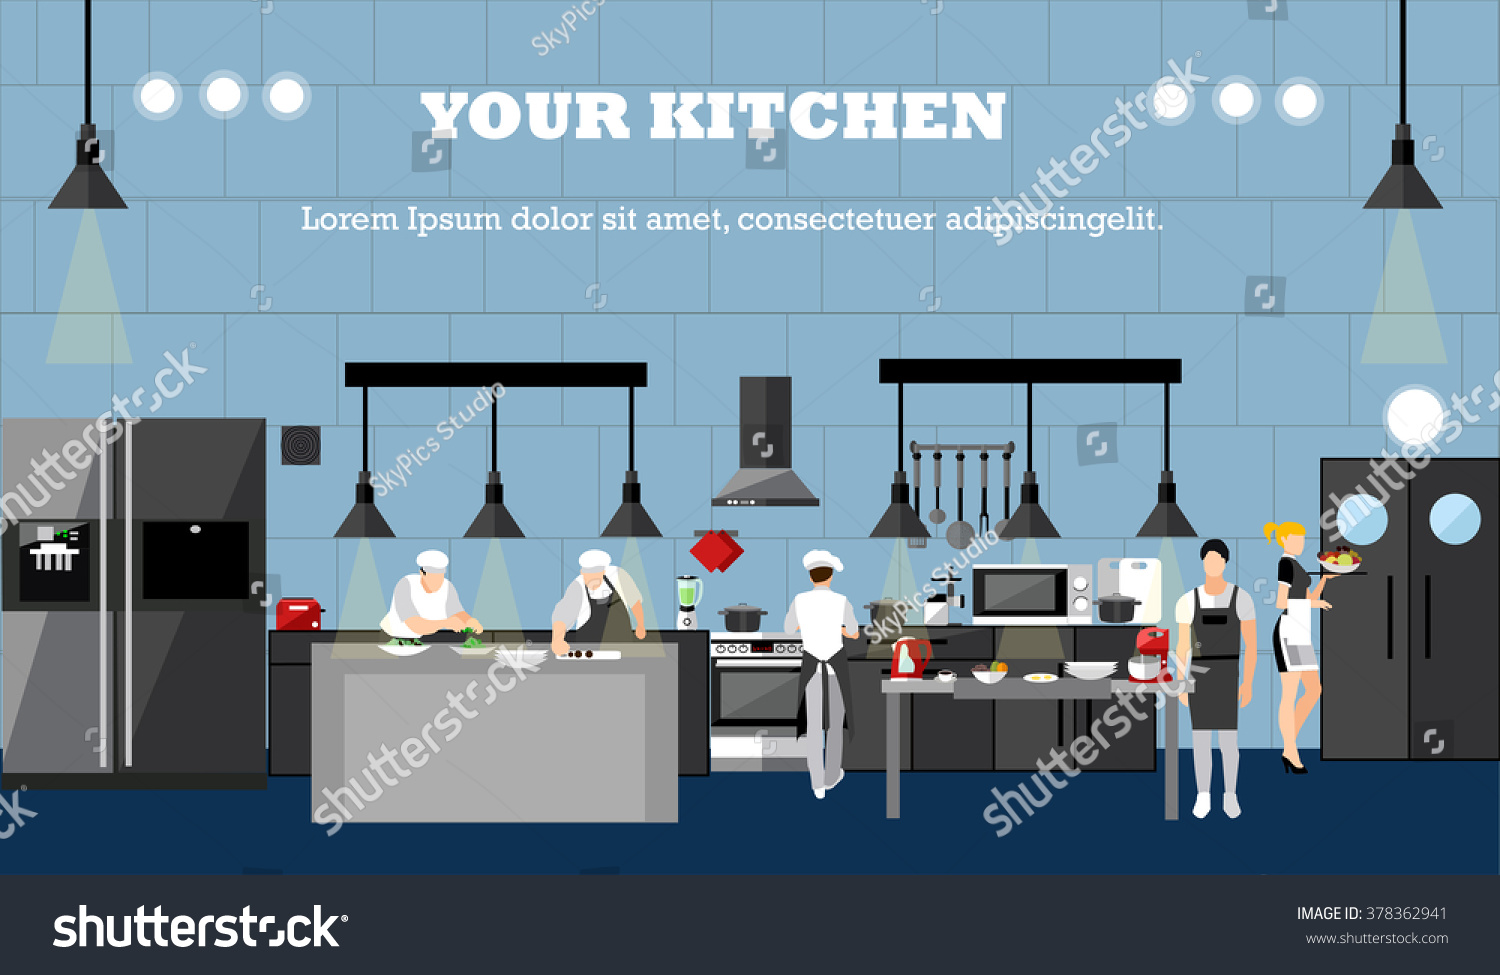 Restaurant Kitchen Illustration vector banner restaurant interiors chefs cooking stock vector